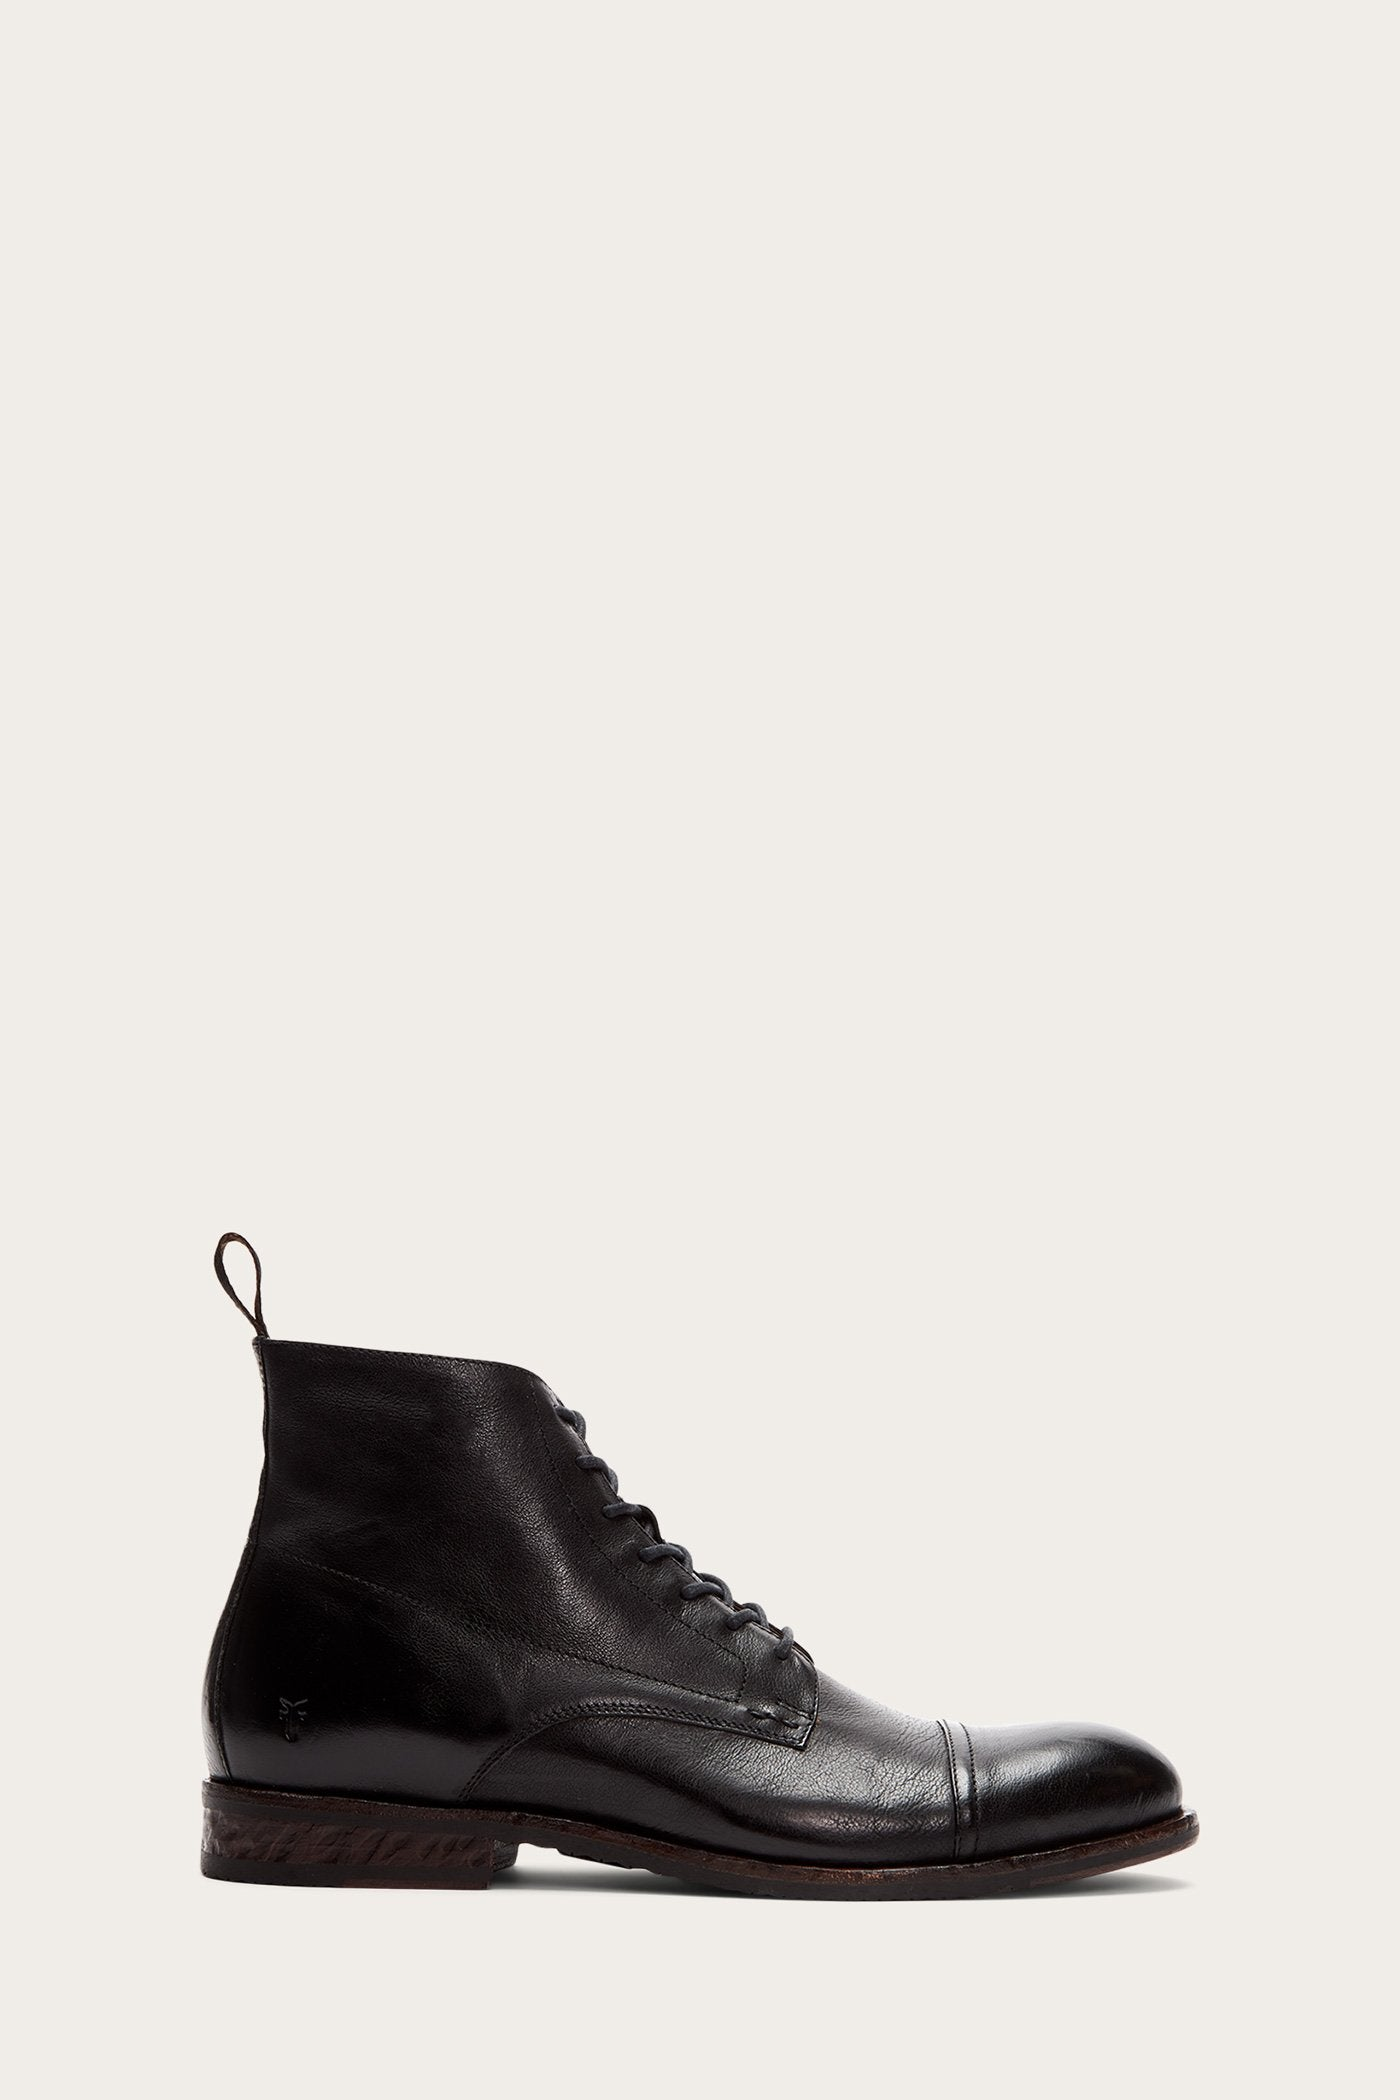 1920s Style Mens Shoes | Peaky Blinders Boots Grant Lace Up $199.00 AT vintagedancer.com